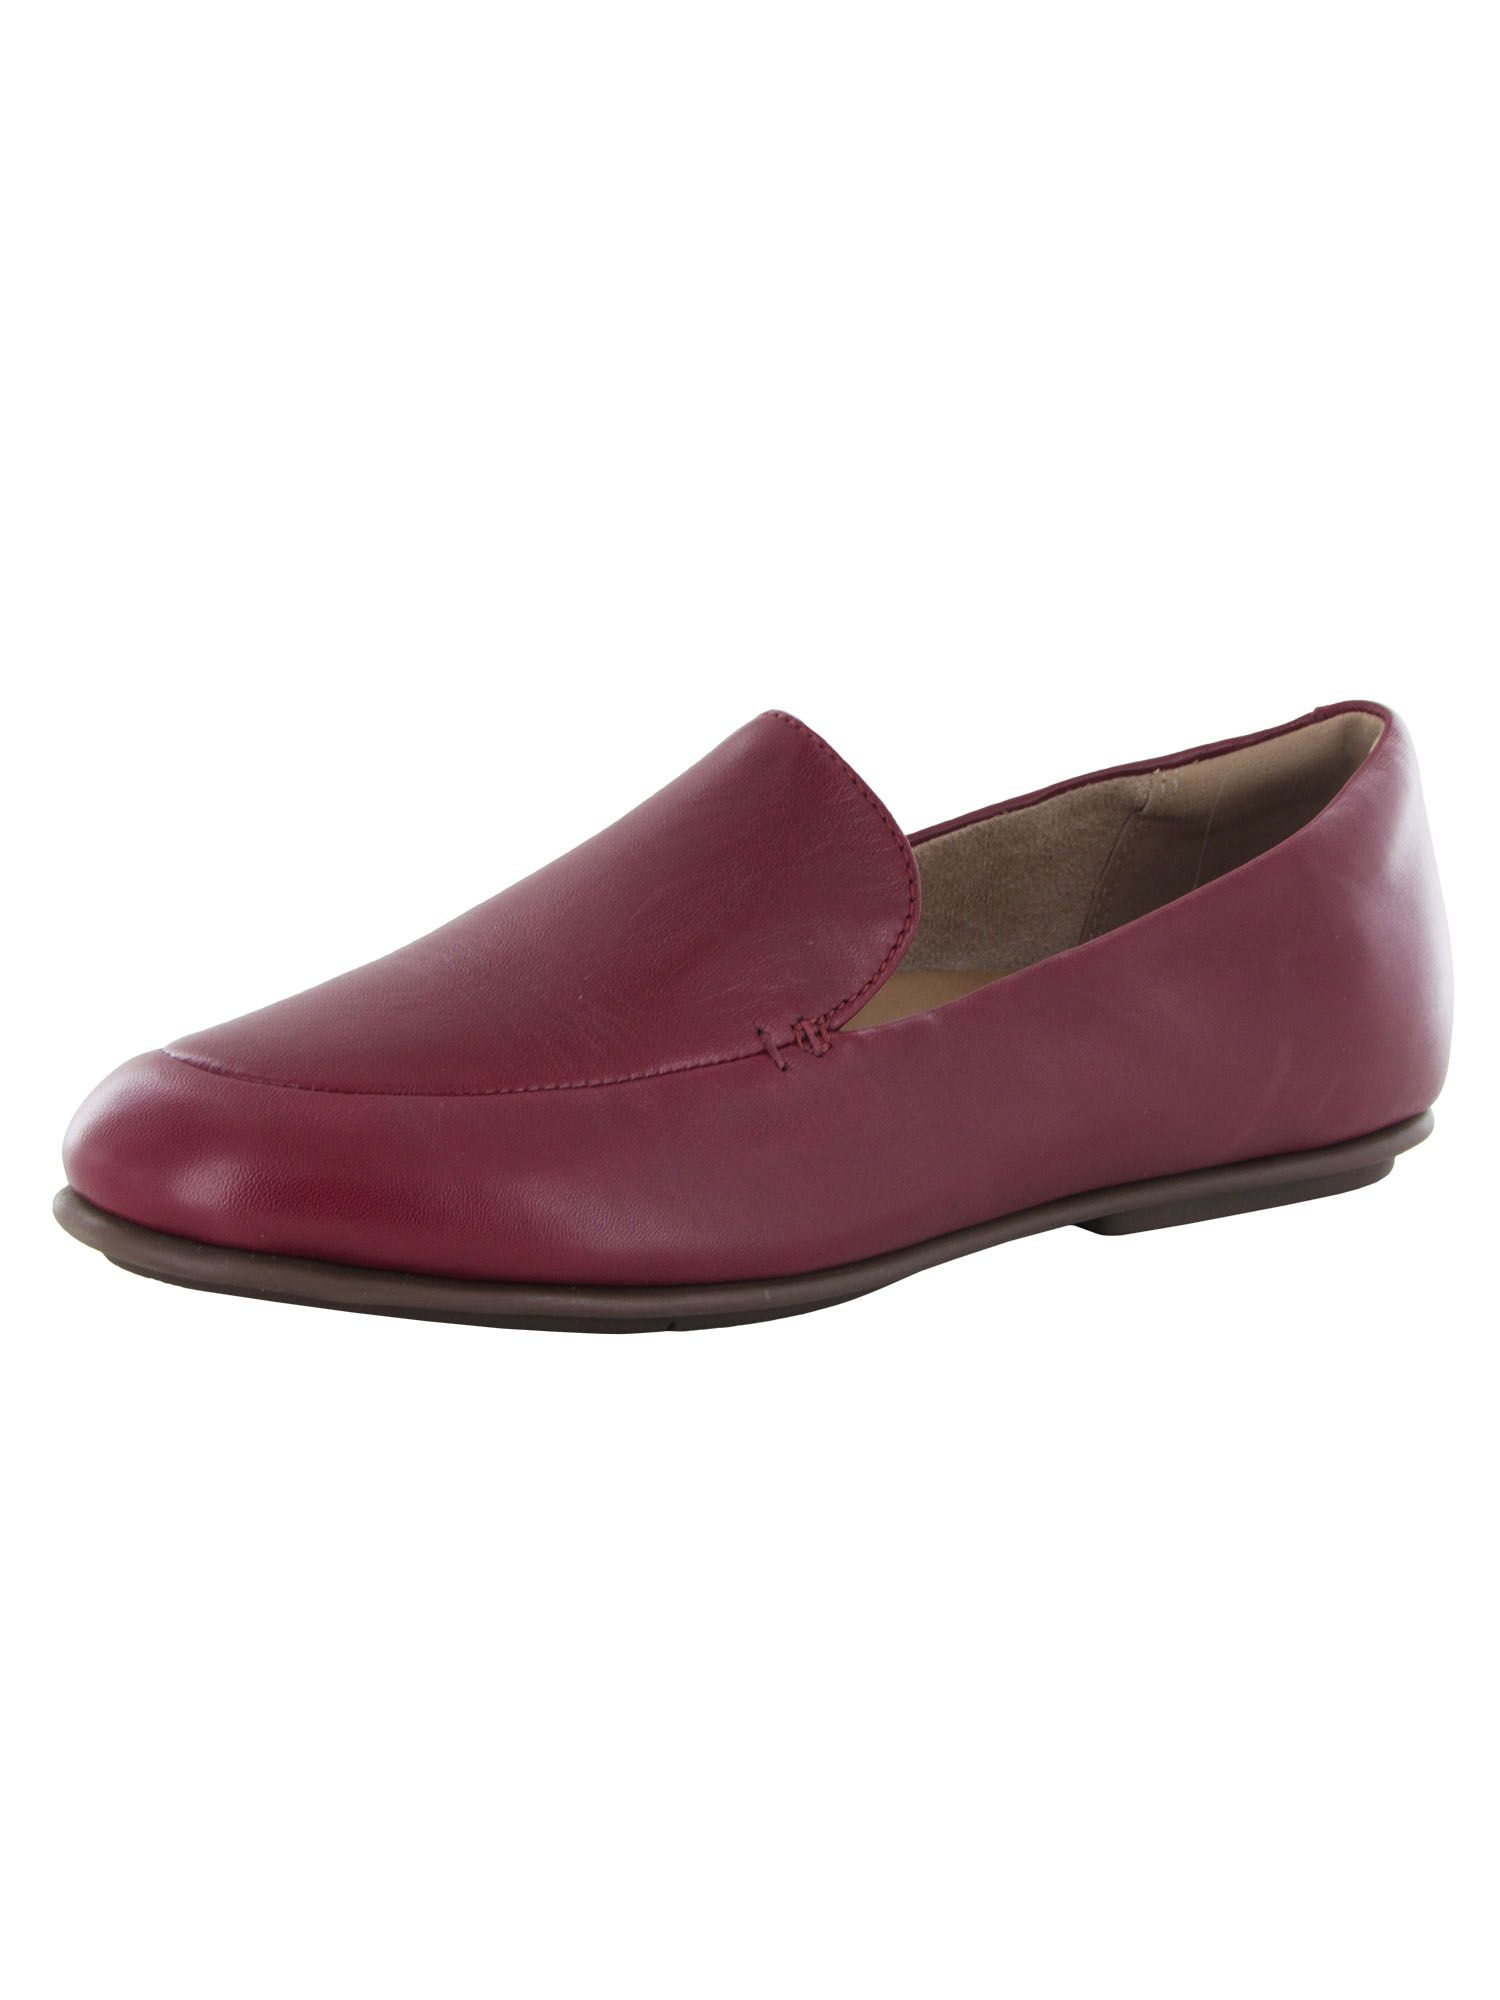 Fitflop Womens Lena Leather Slip On Loafer Shoes, Maroon, US 6.5